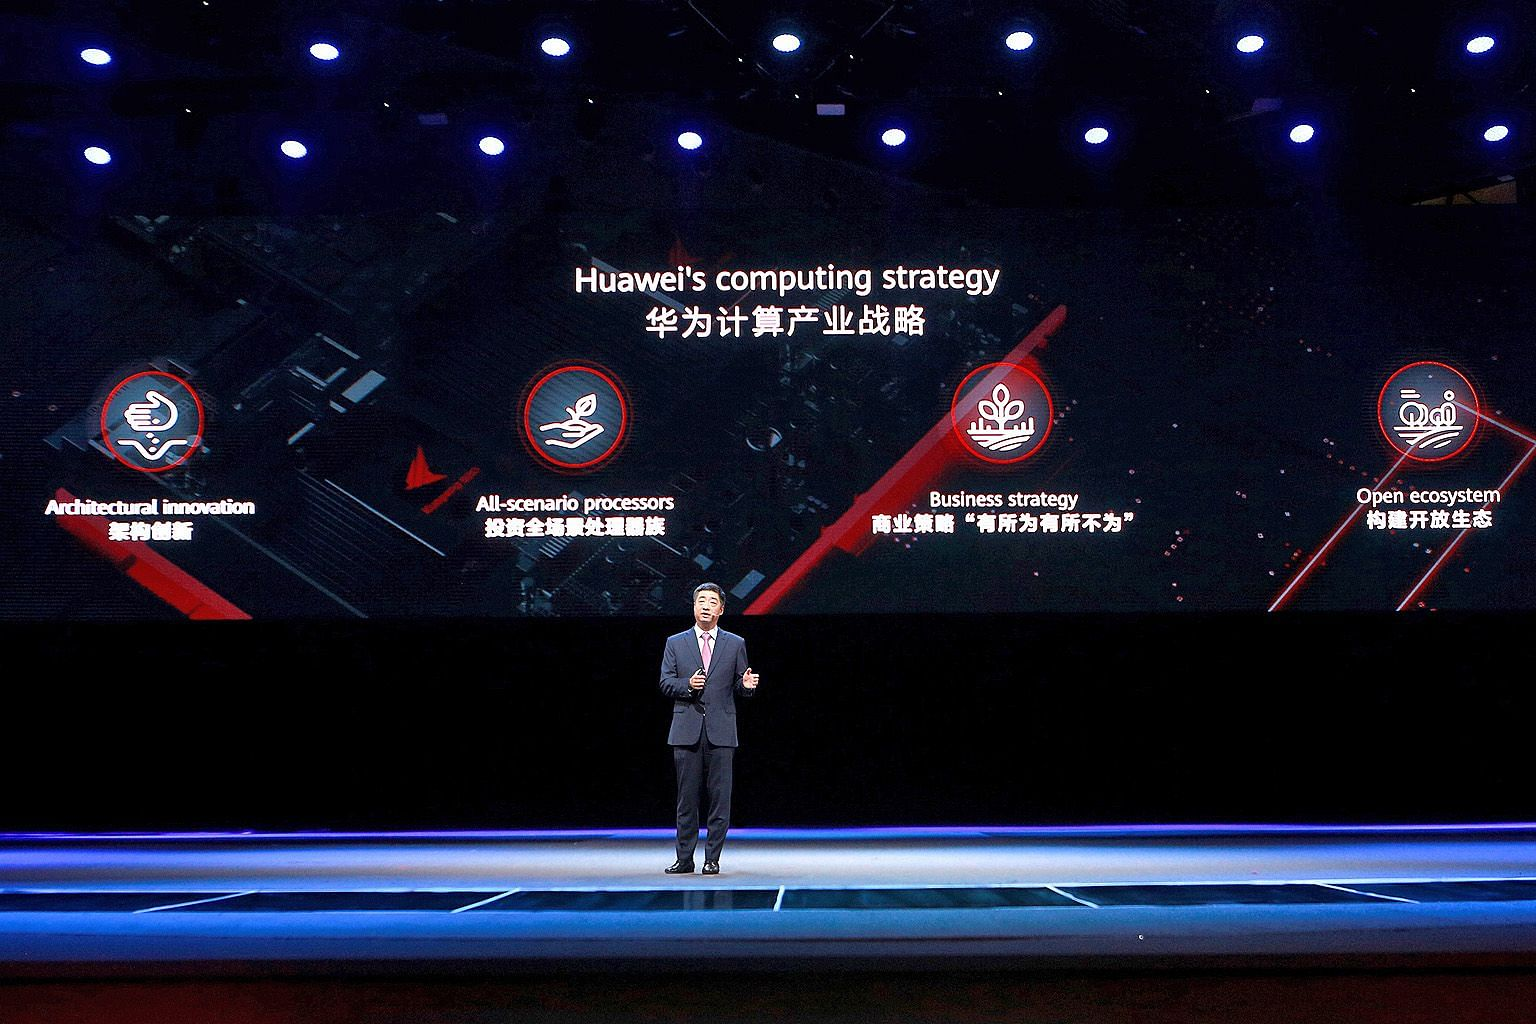 Huawei deputy chairman Ken Hu speaking at the annual Huawei Connect conference in Shanghai yesterday. He laid out plans to turn the firm into a computing powerhouse as he predicts a boom in the market over the next 10 years.